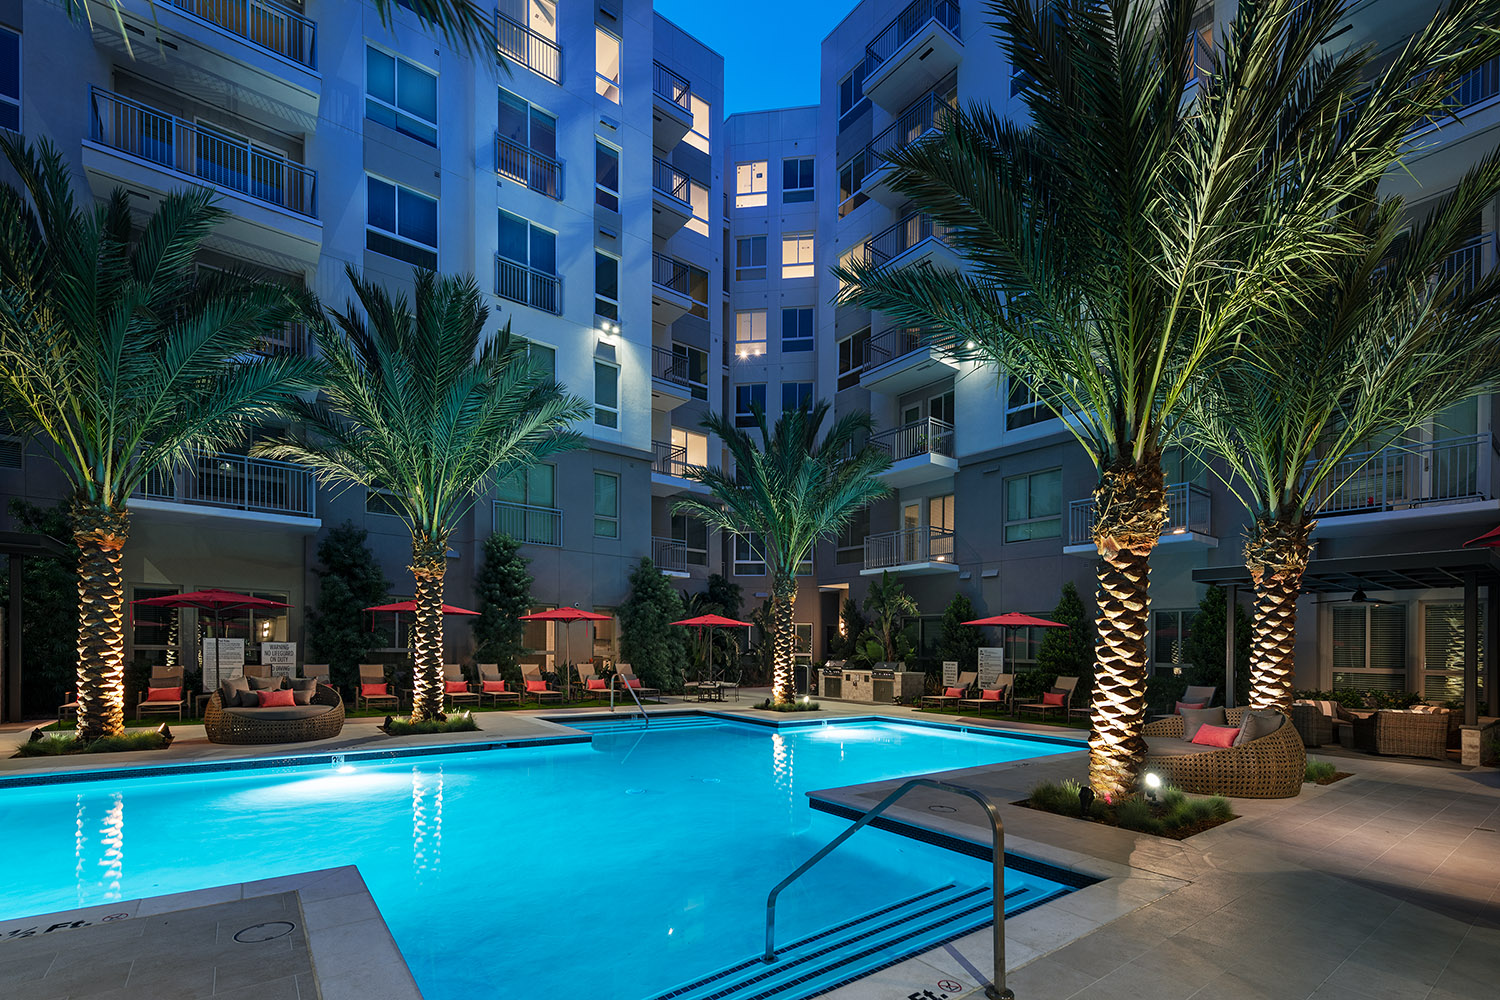 Bell Partners Grows West Coast Portfolio With Acquisition of 395-Unit Hanover Warner Center Apartment Community in Los Angeles